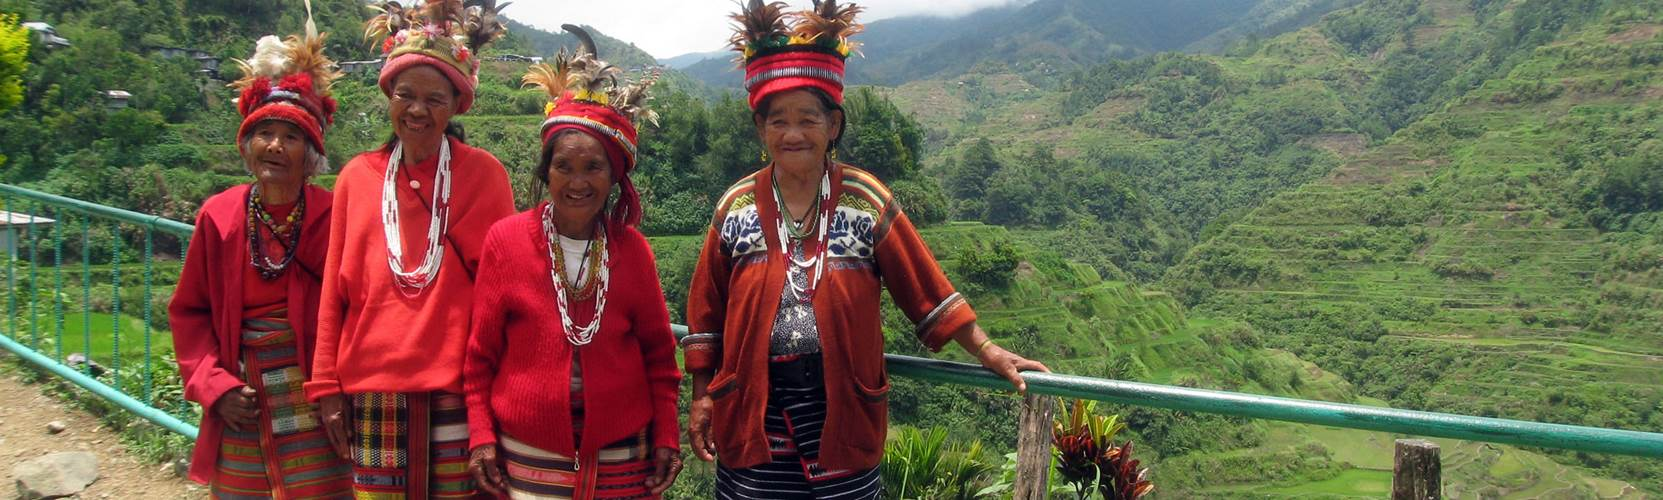 Borneo holidays and culture